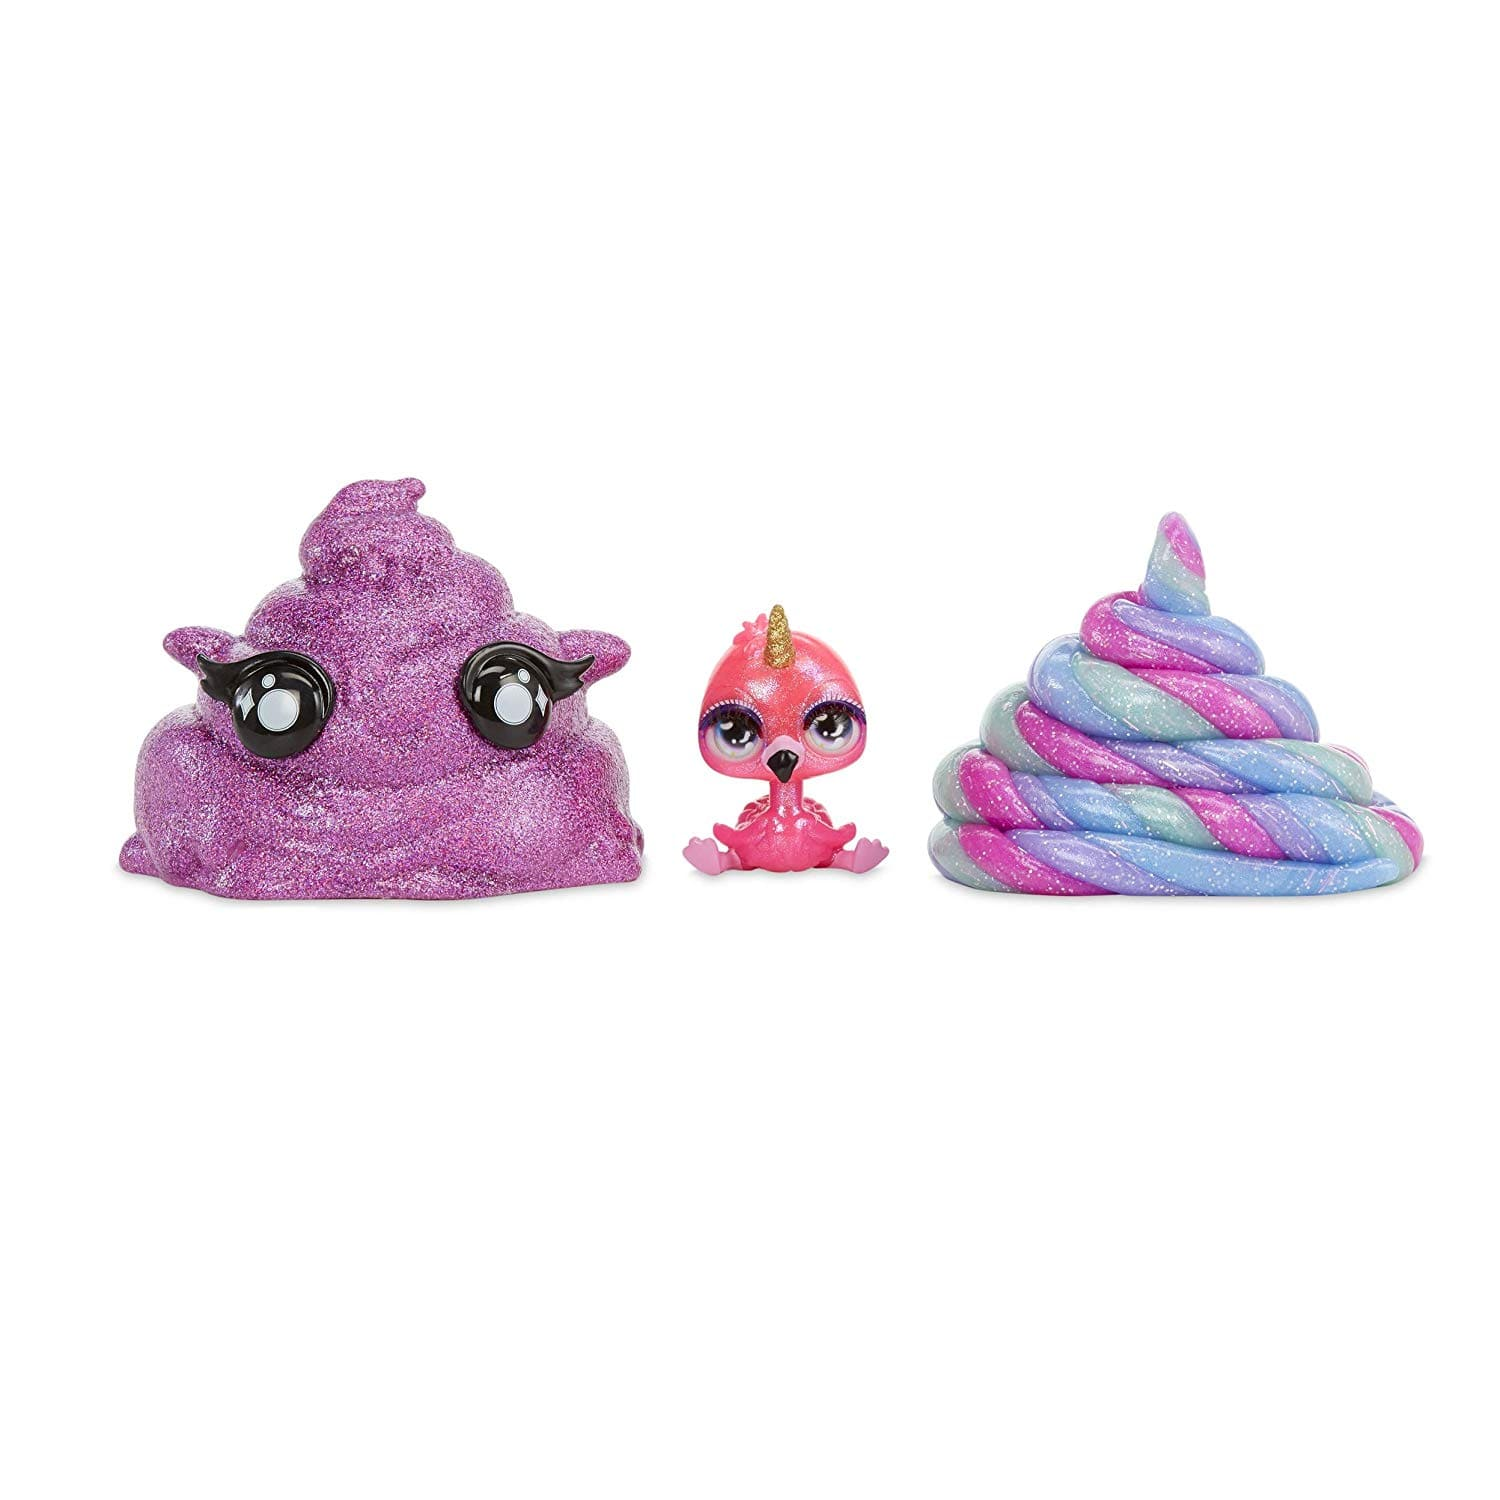 Poopsie toys amazon $4.84 and up